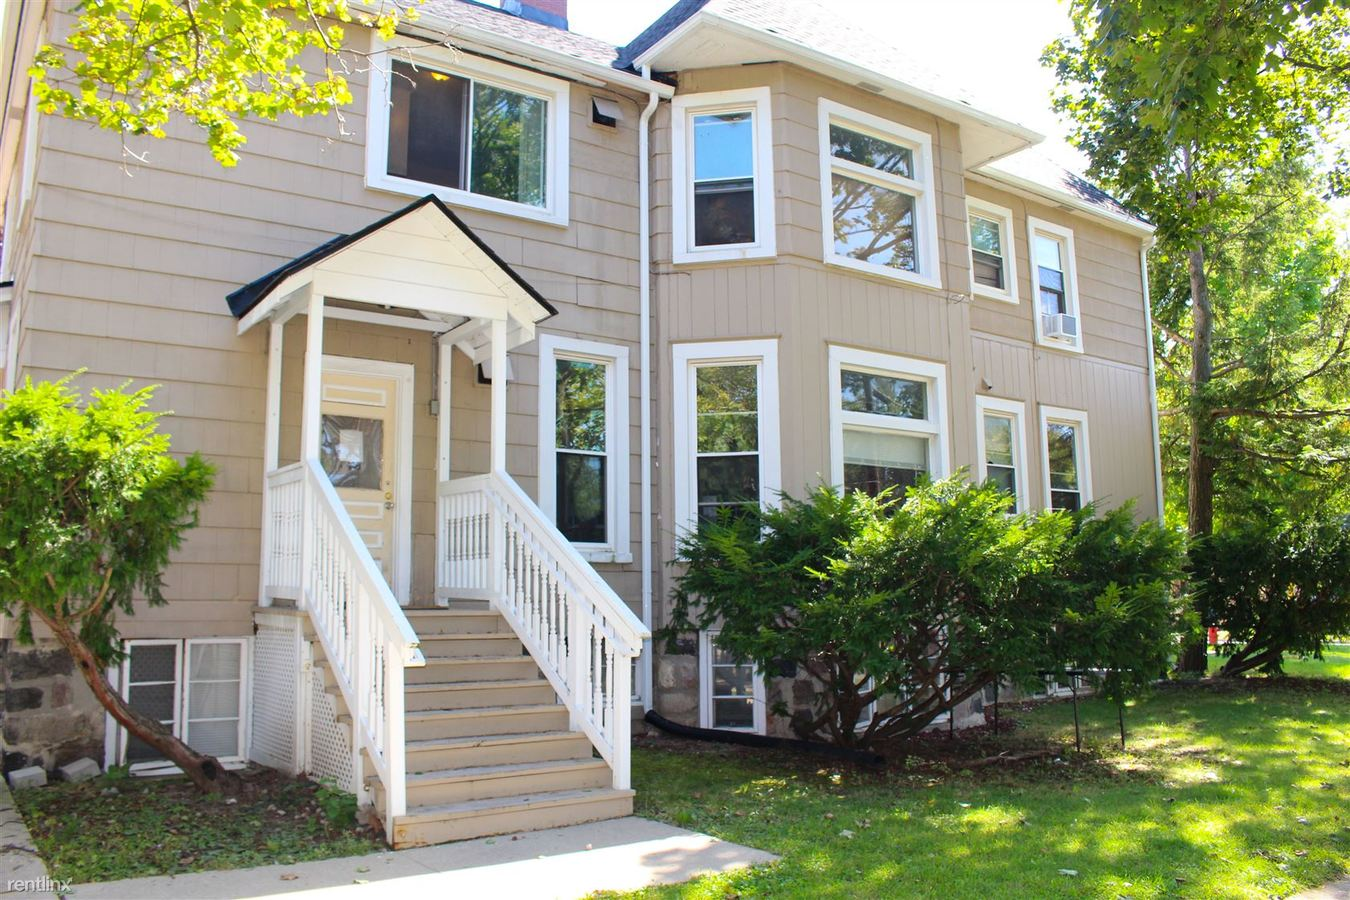 4 Bedrooms 2 Bathrooms Apartment for rent at 1003 Packard St in Ann Arbor, MI